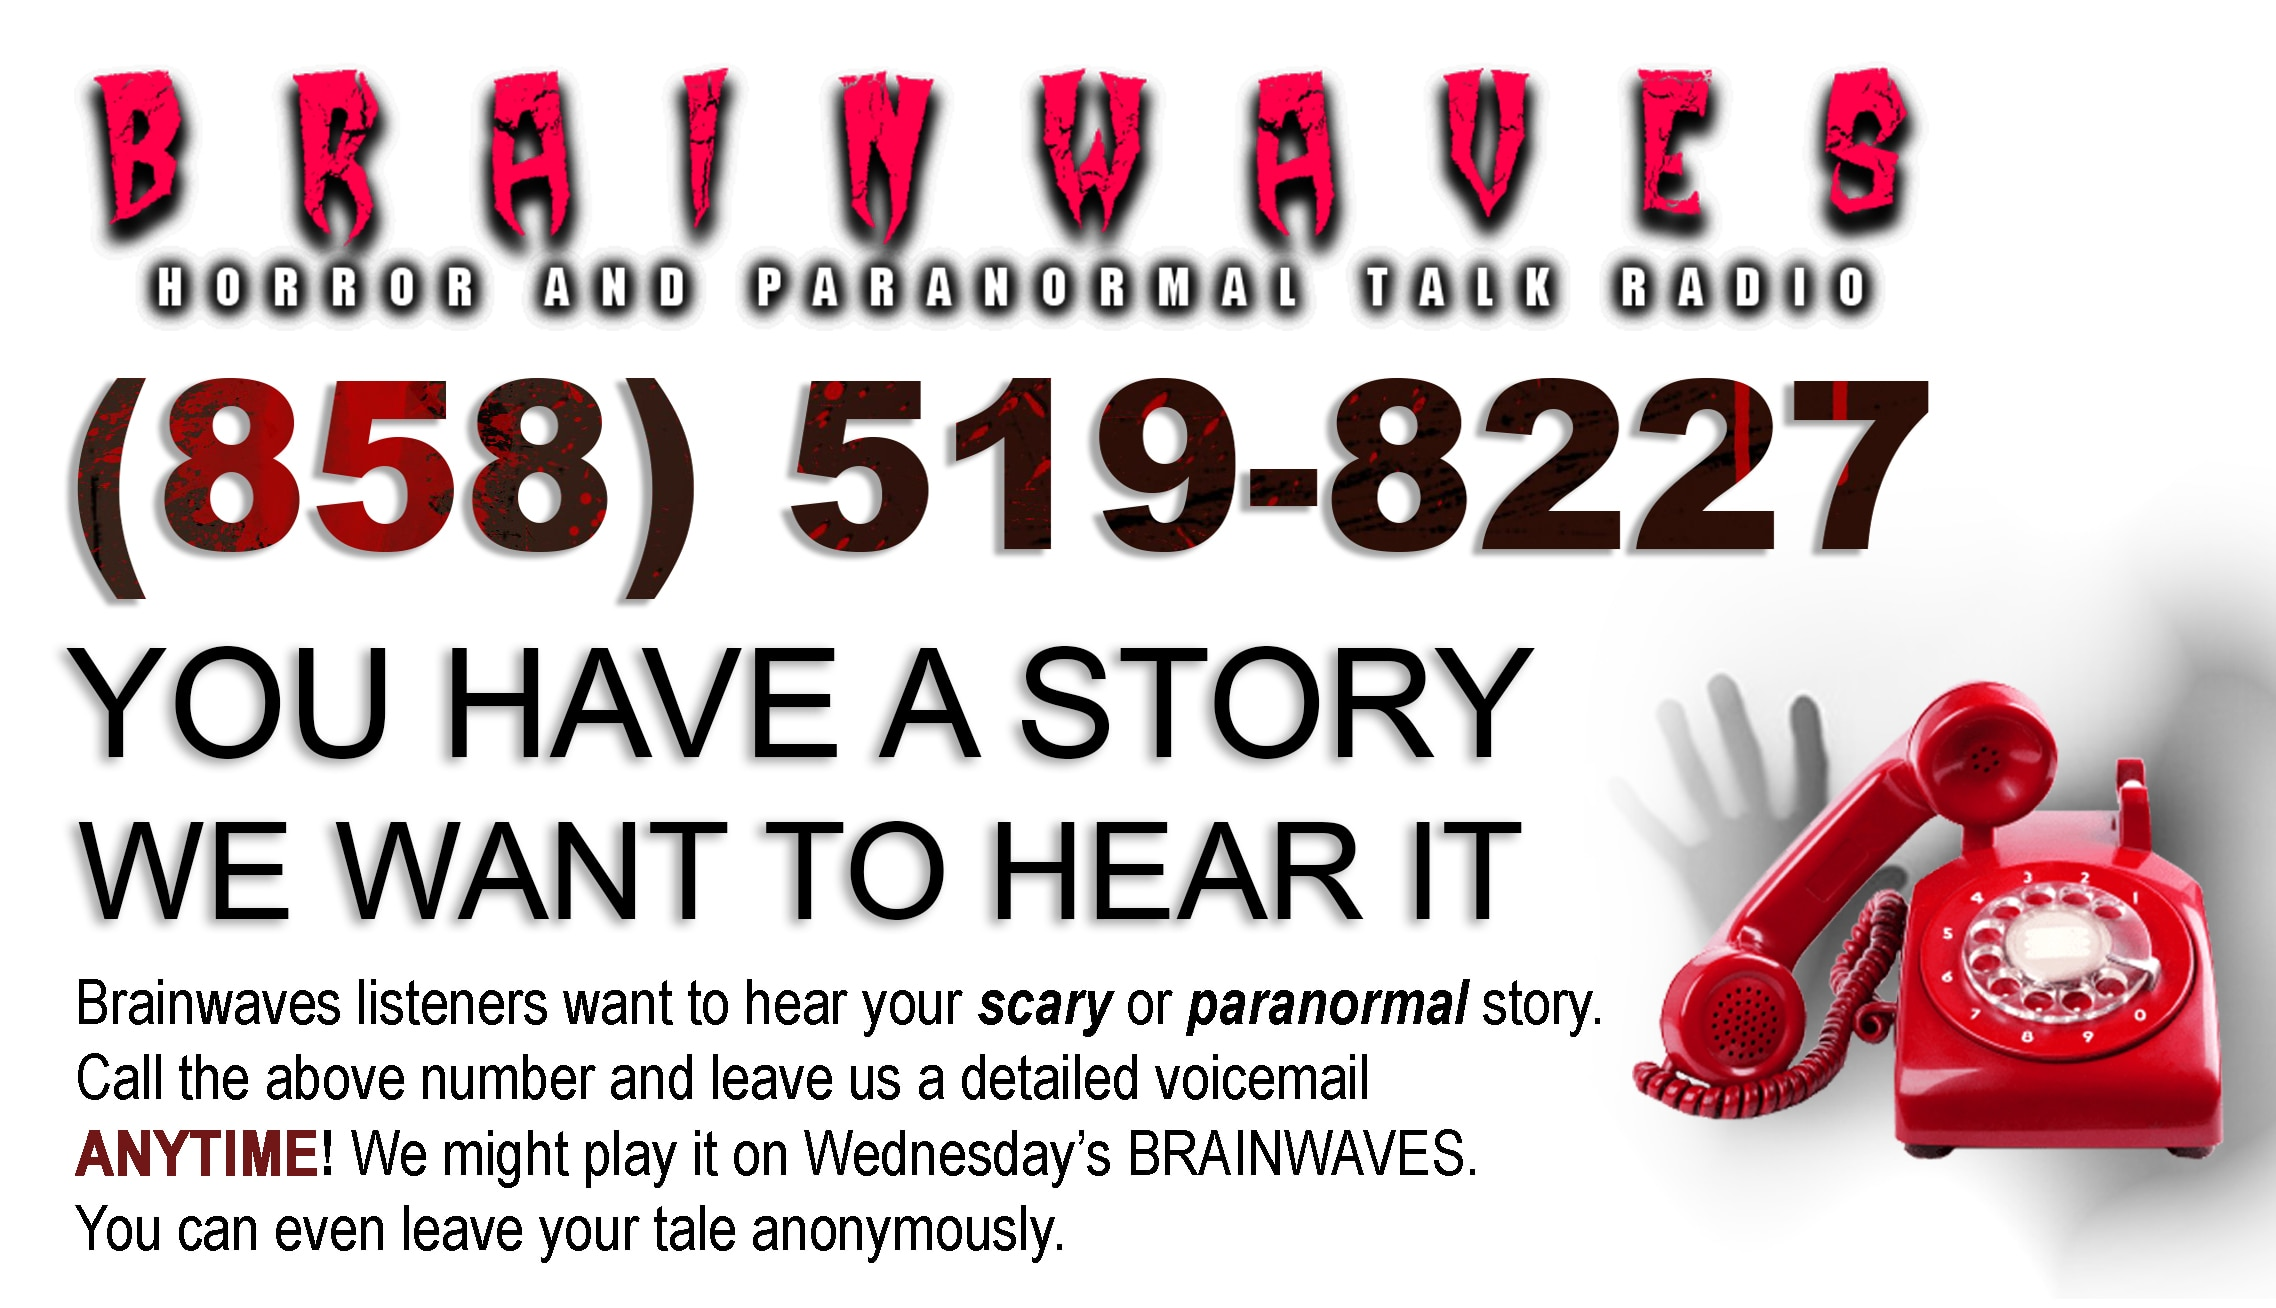 CallBrainwaves v02 - TONIGHT! #Brainwaves Episode 90: Live Listener Investigation: The Haunting of Hazel Marie